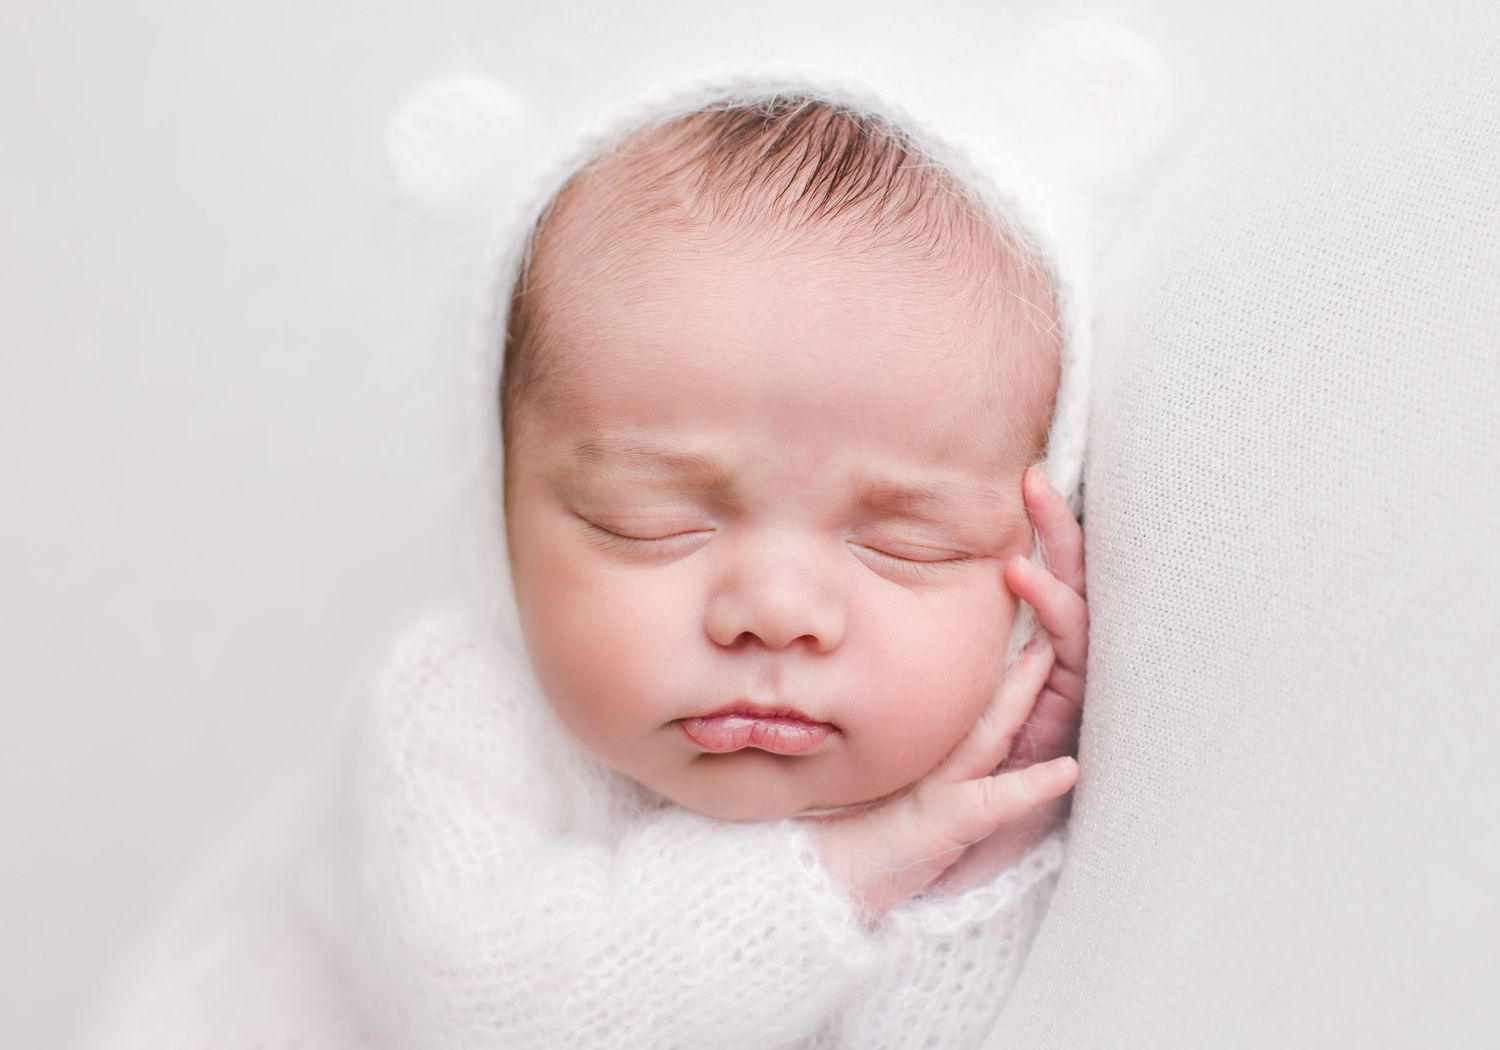 Newborn baby posed sleeping on white back drop - newborn photographer in penticton bc